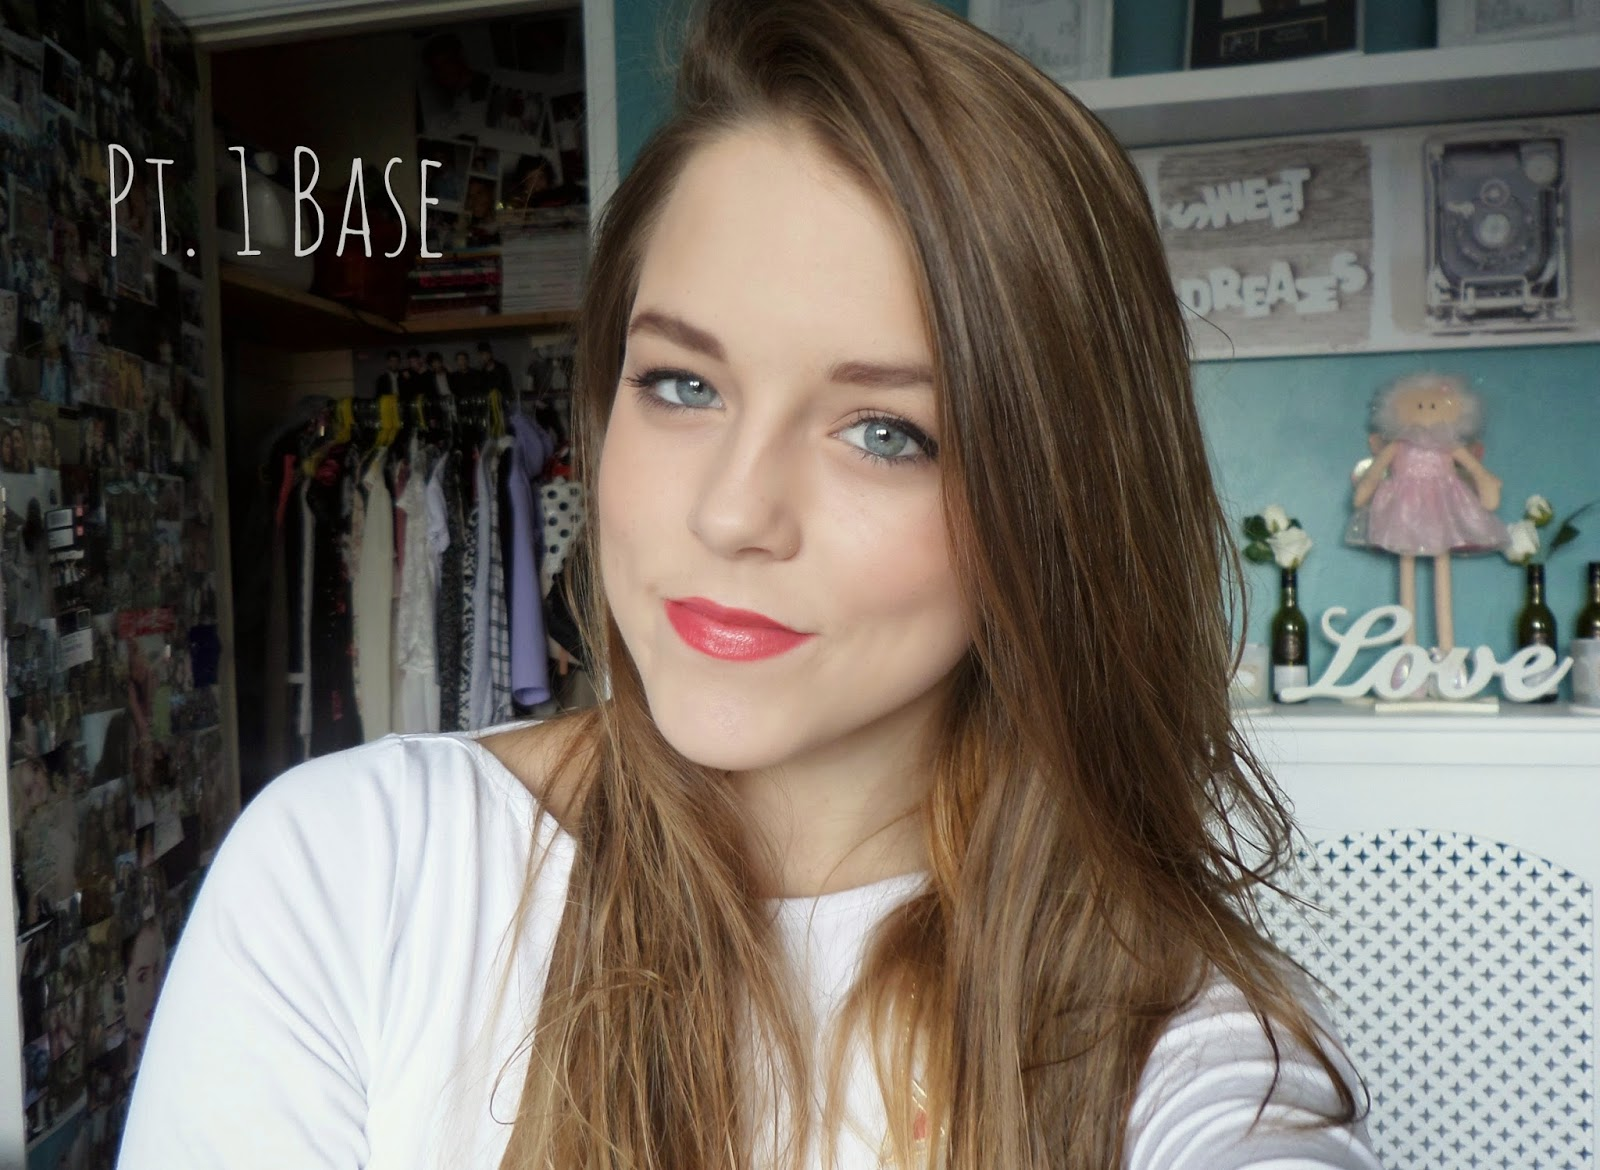 dress - Hair4 and Beauty everyday makeup essentials video